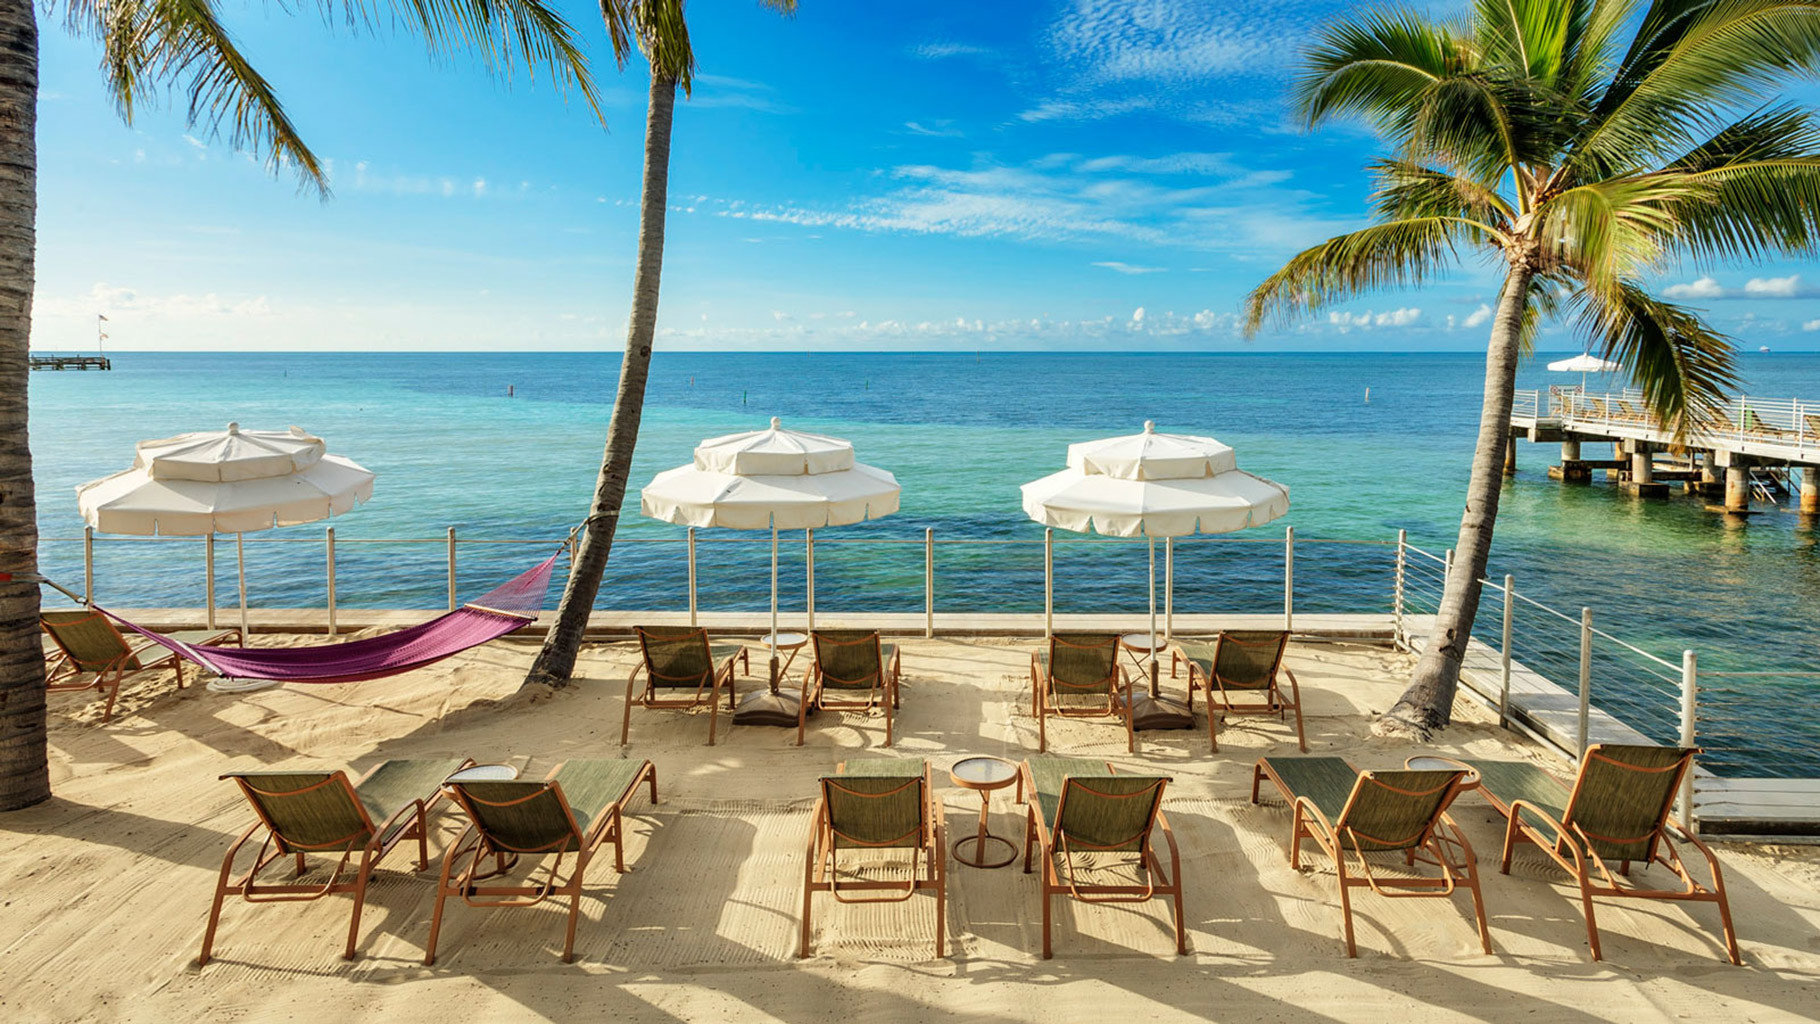 water umbrella chair sky tree Beach lawn palm leisure caribbean Sea Resort Ocean lined Coast arecales set Pool shore Deck tropics empty sunny swimming line shade